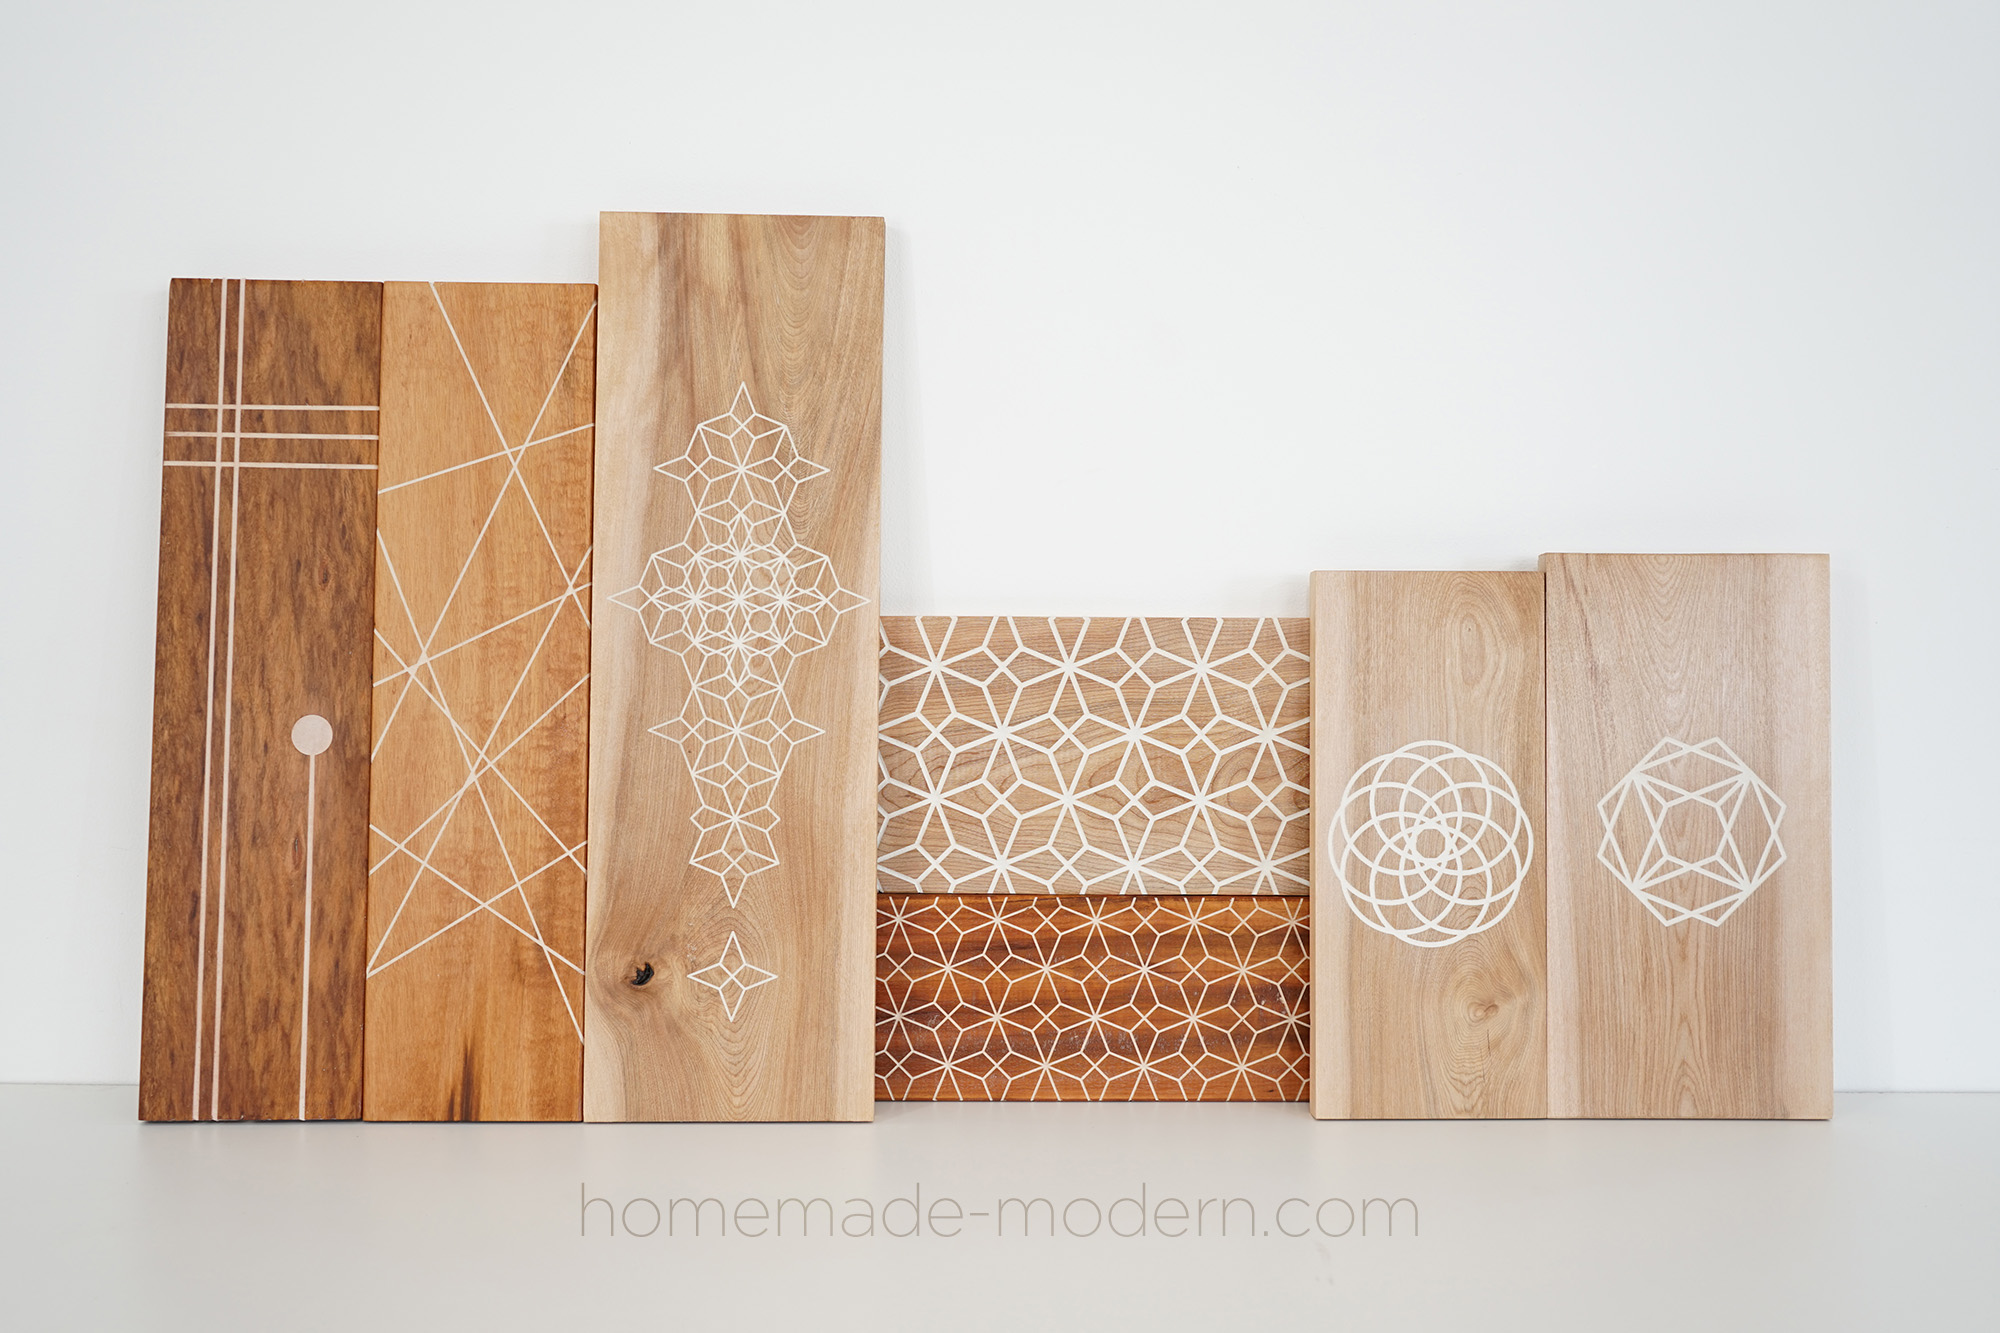 Ben Uyeda of HomeMade Modern used white grout for these inlays. For more information go to HomeMade-Modern.com